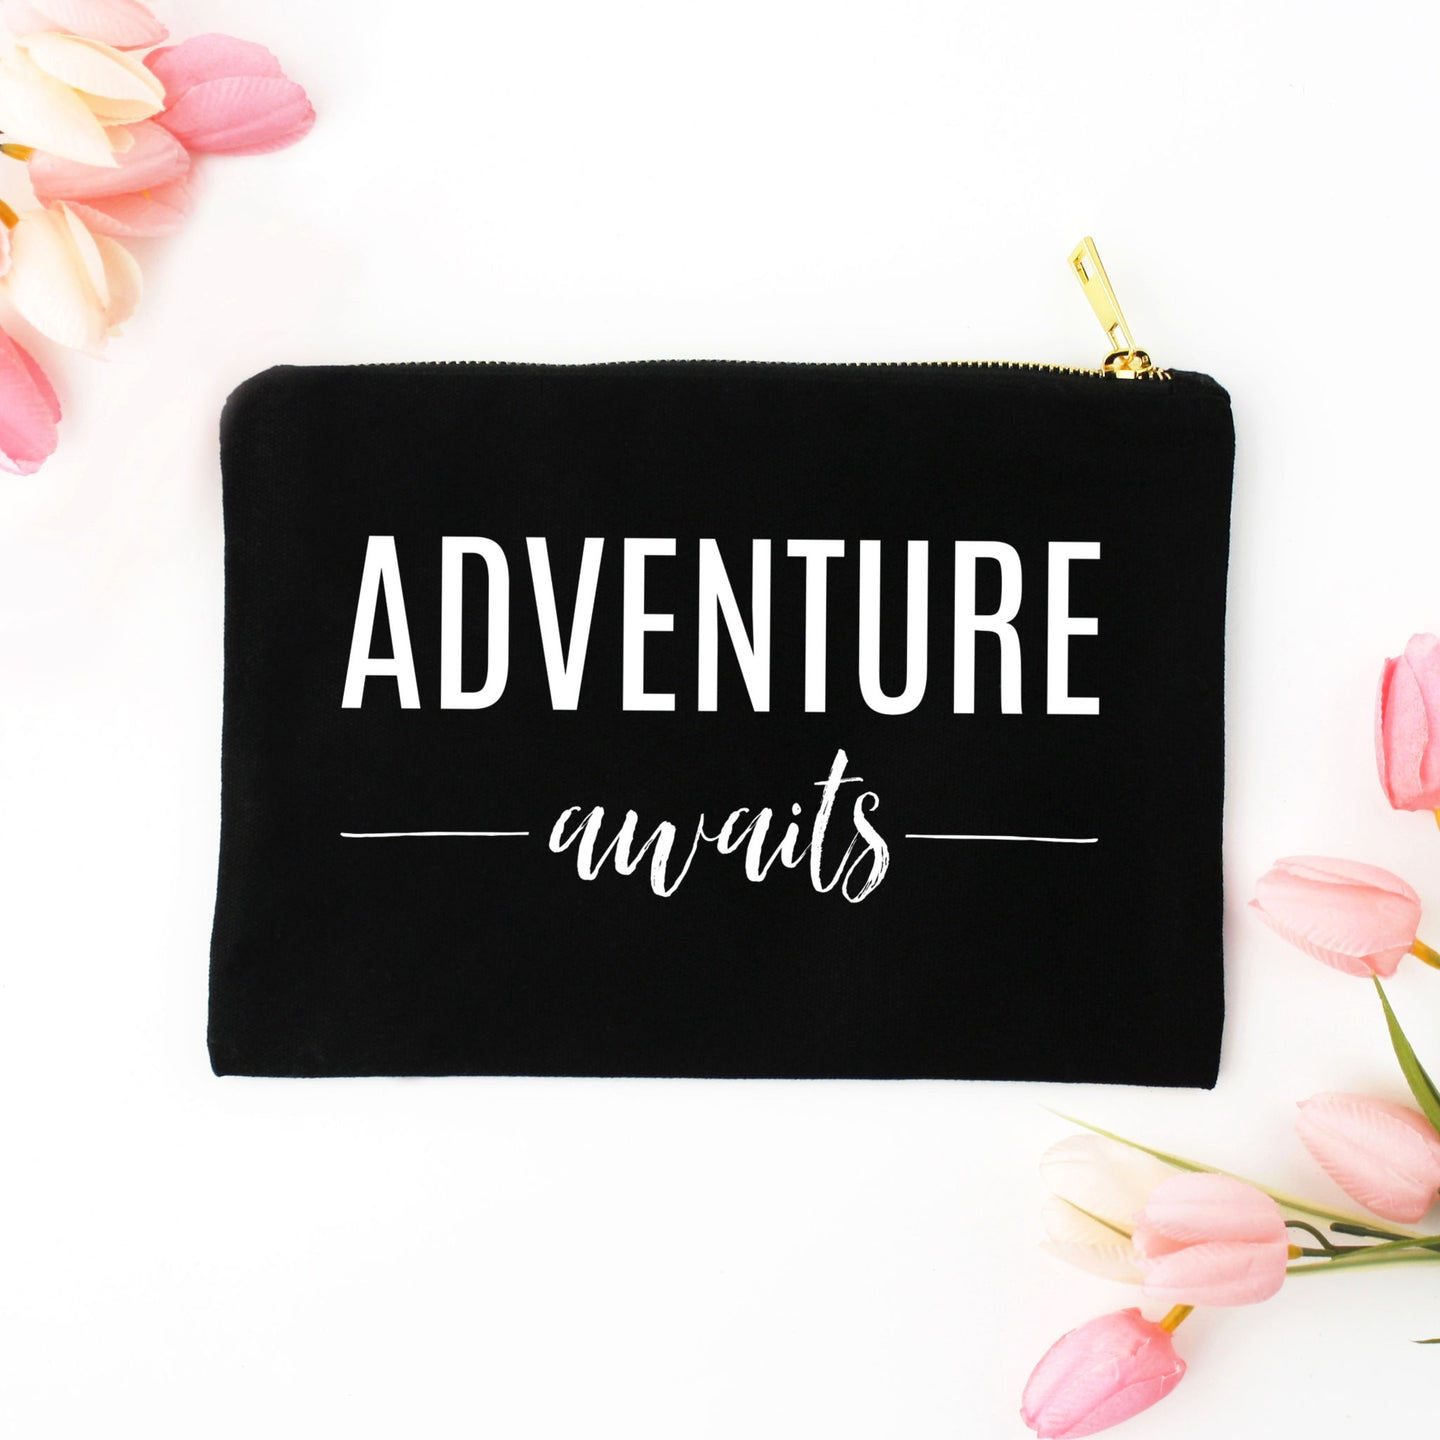 Adventure Awaits black cotton canvas zippered cosmetic makeup bag from Modern Trail